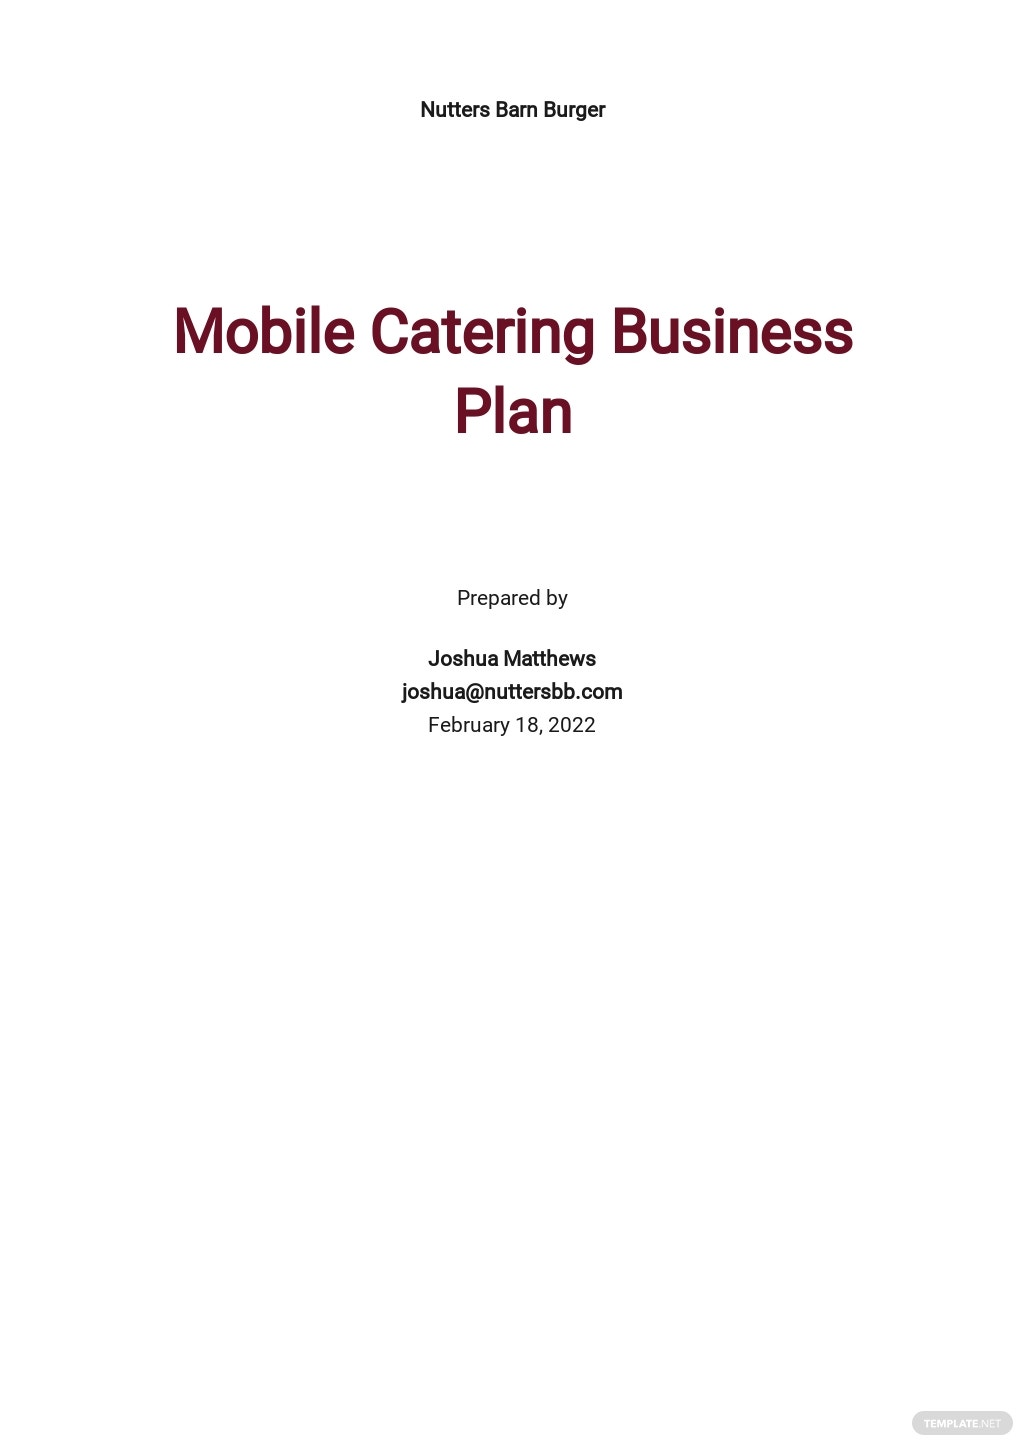 Mobile Catering Business Plan Template.jpe